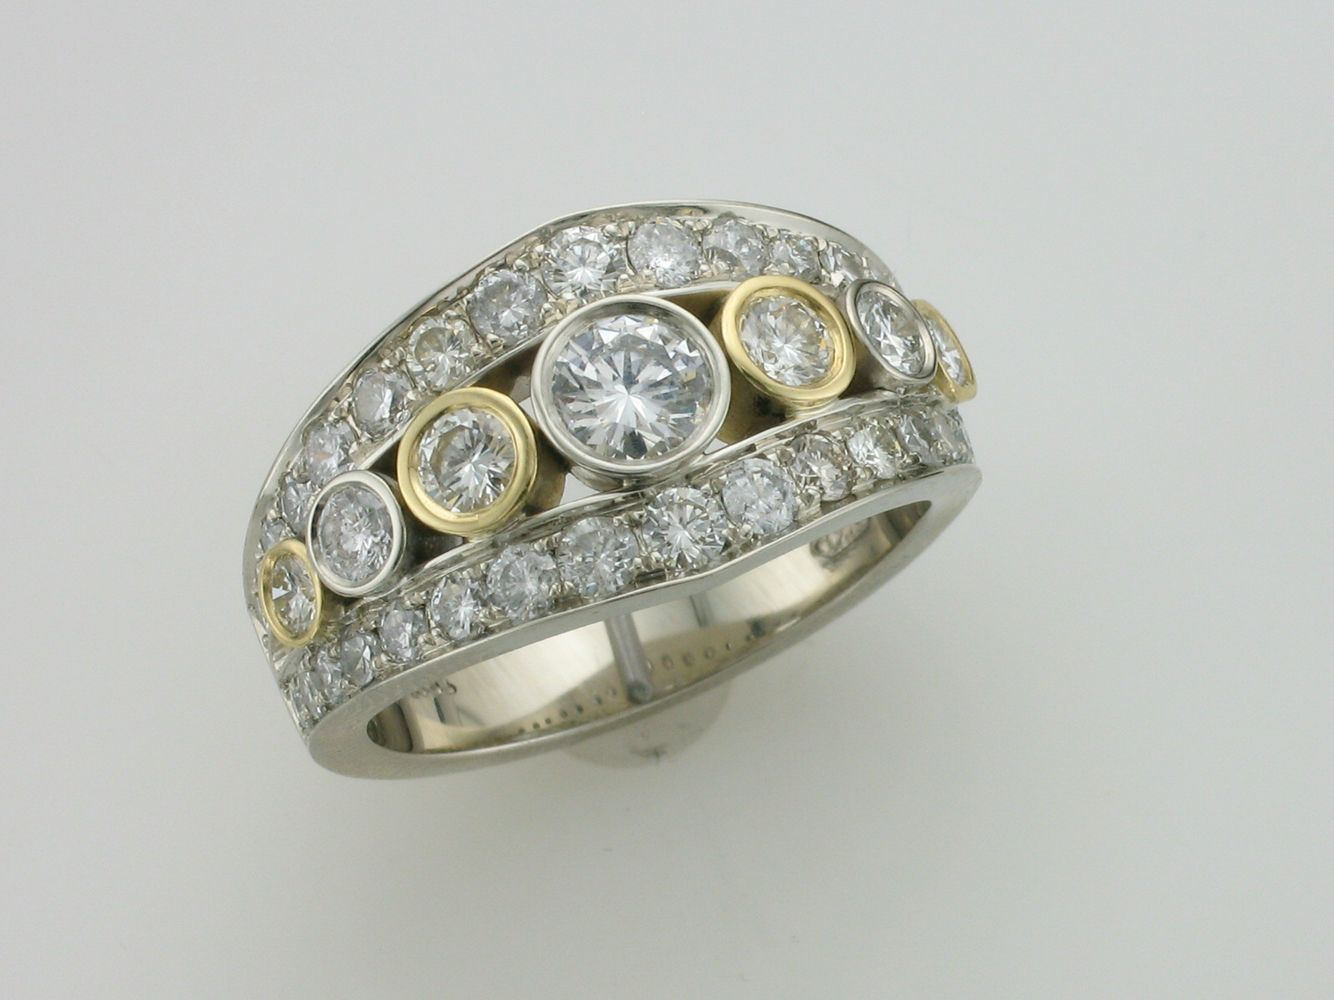 Custom made diamond ring by wong kenus jewellery in calgary ab